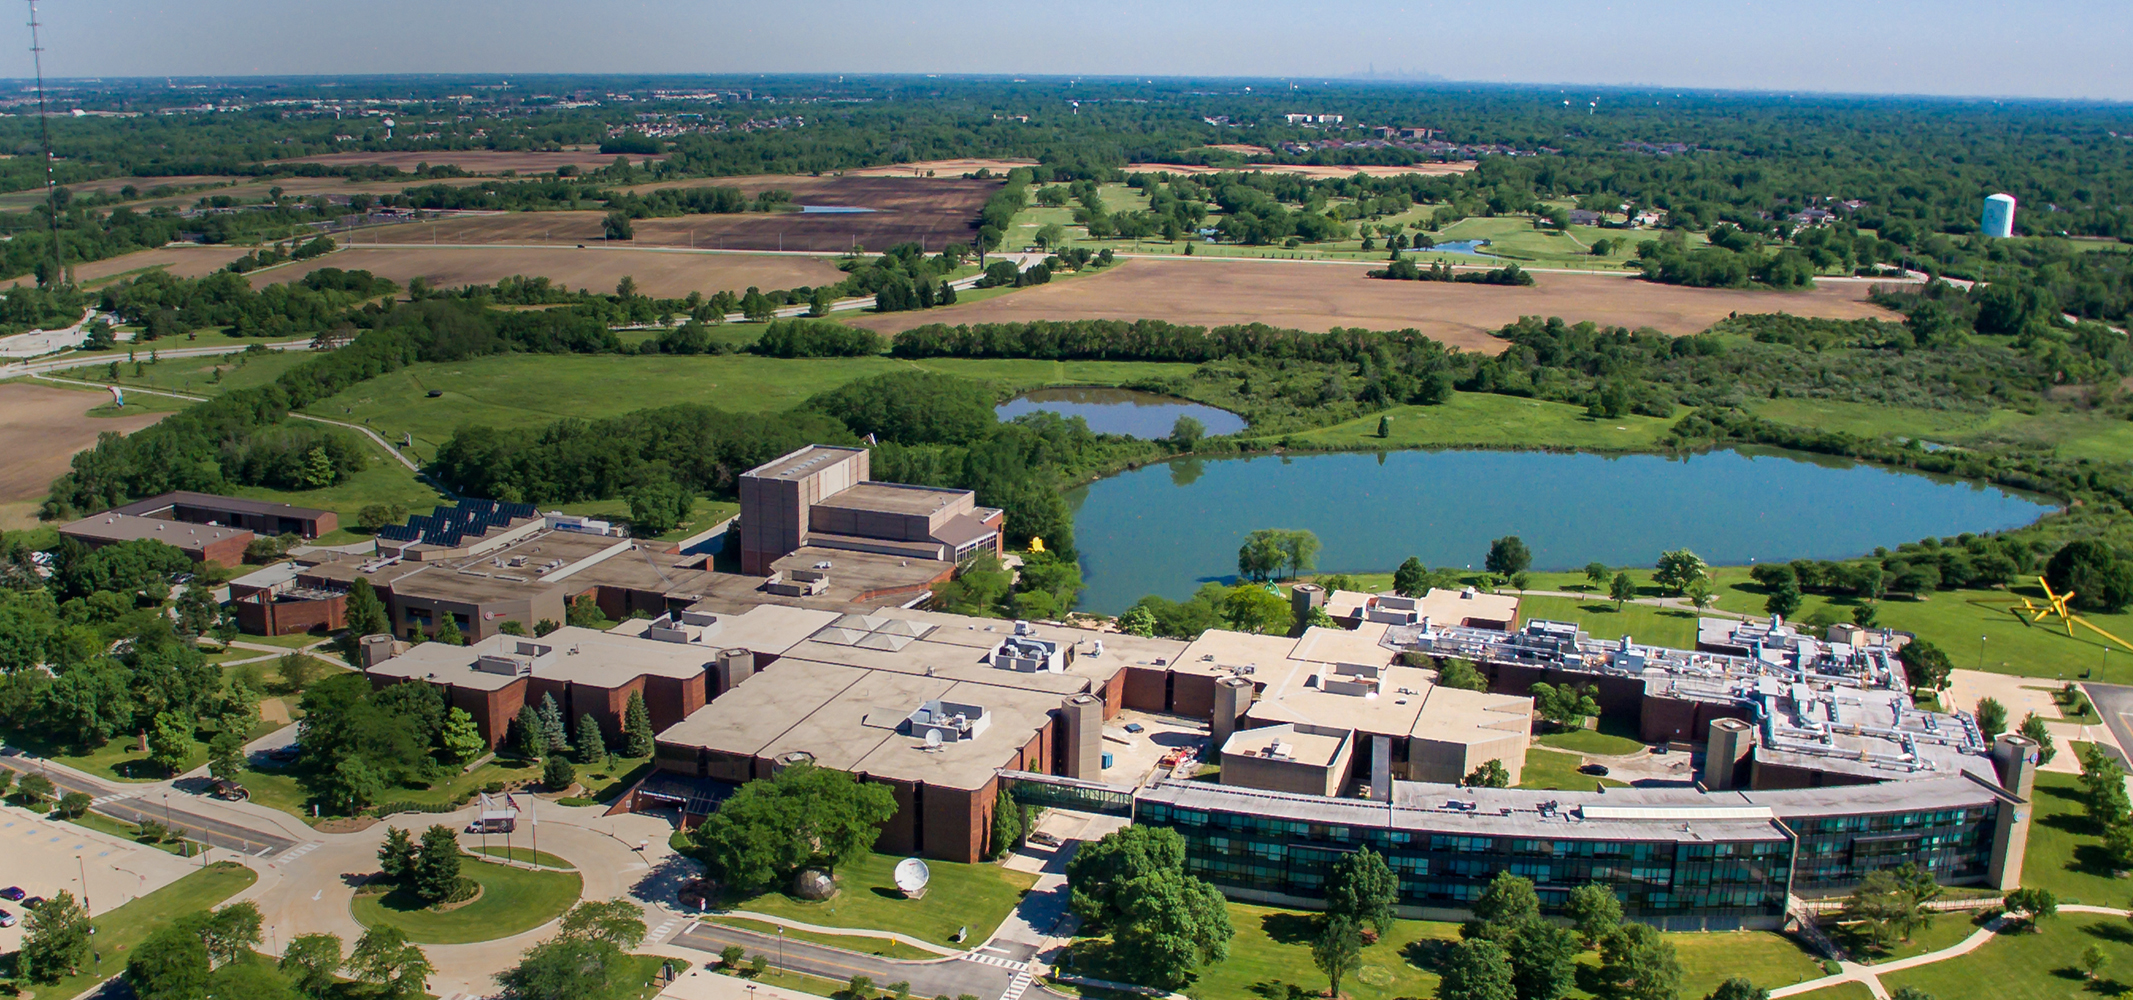 Aerial view of Governors State University and surrounding community